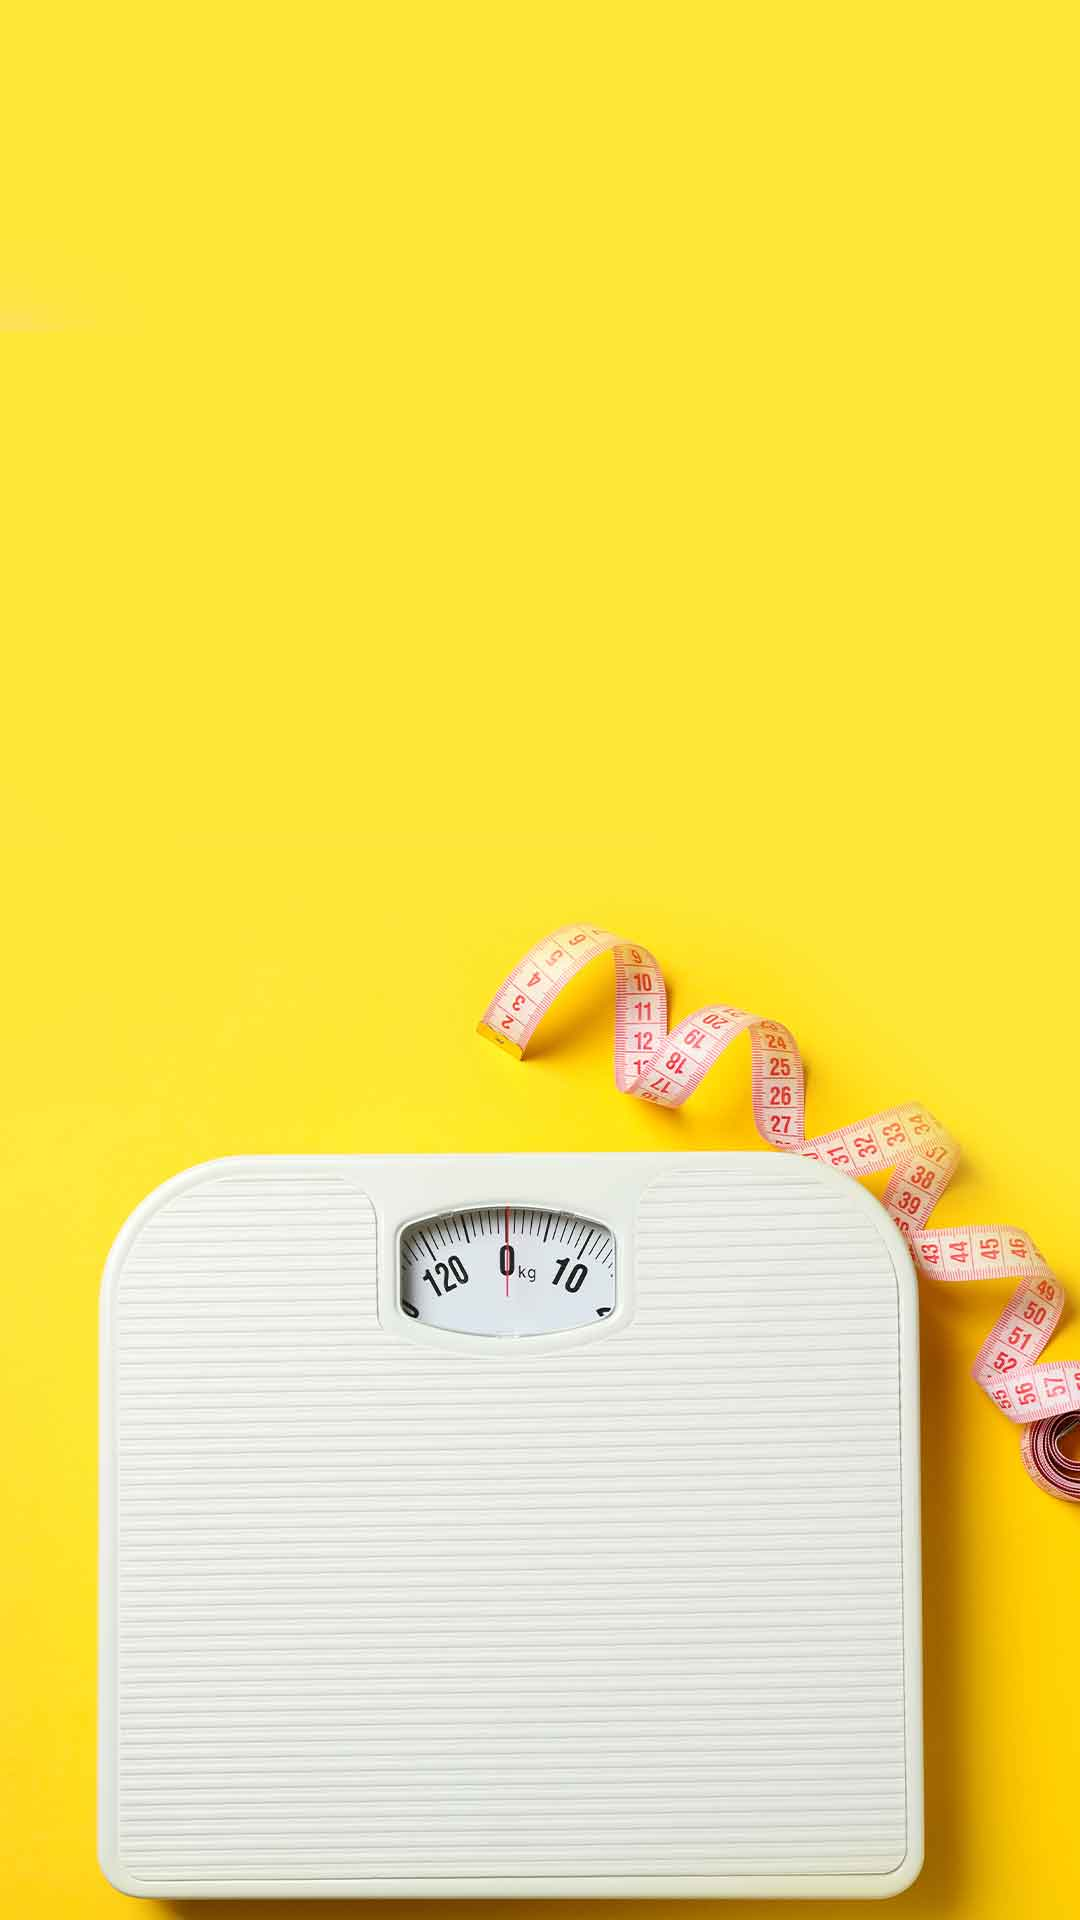 5 Easy tips for weight loss